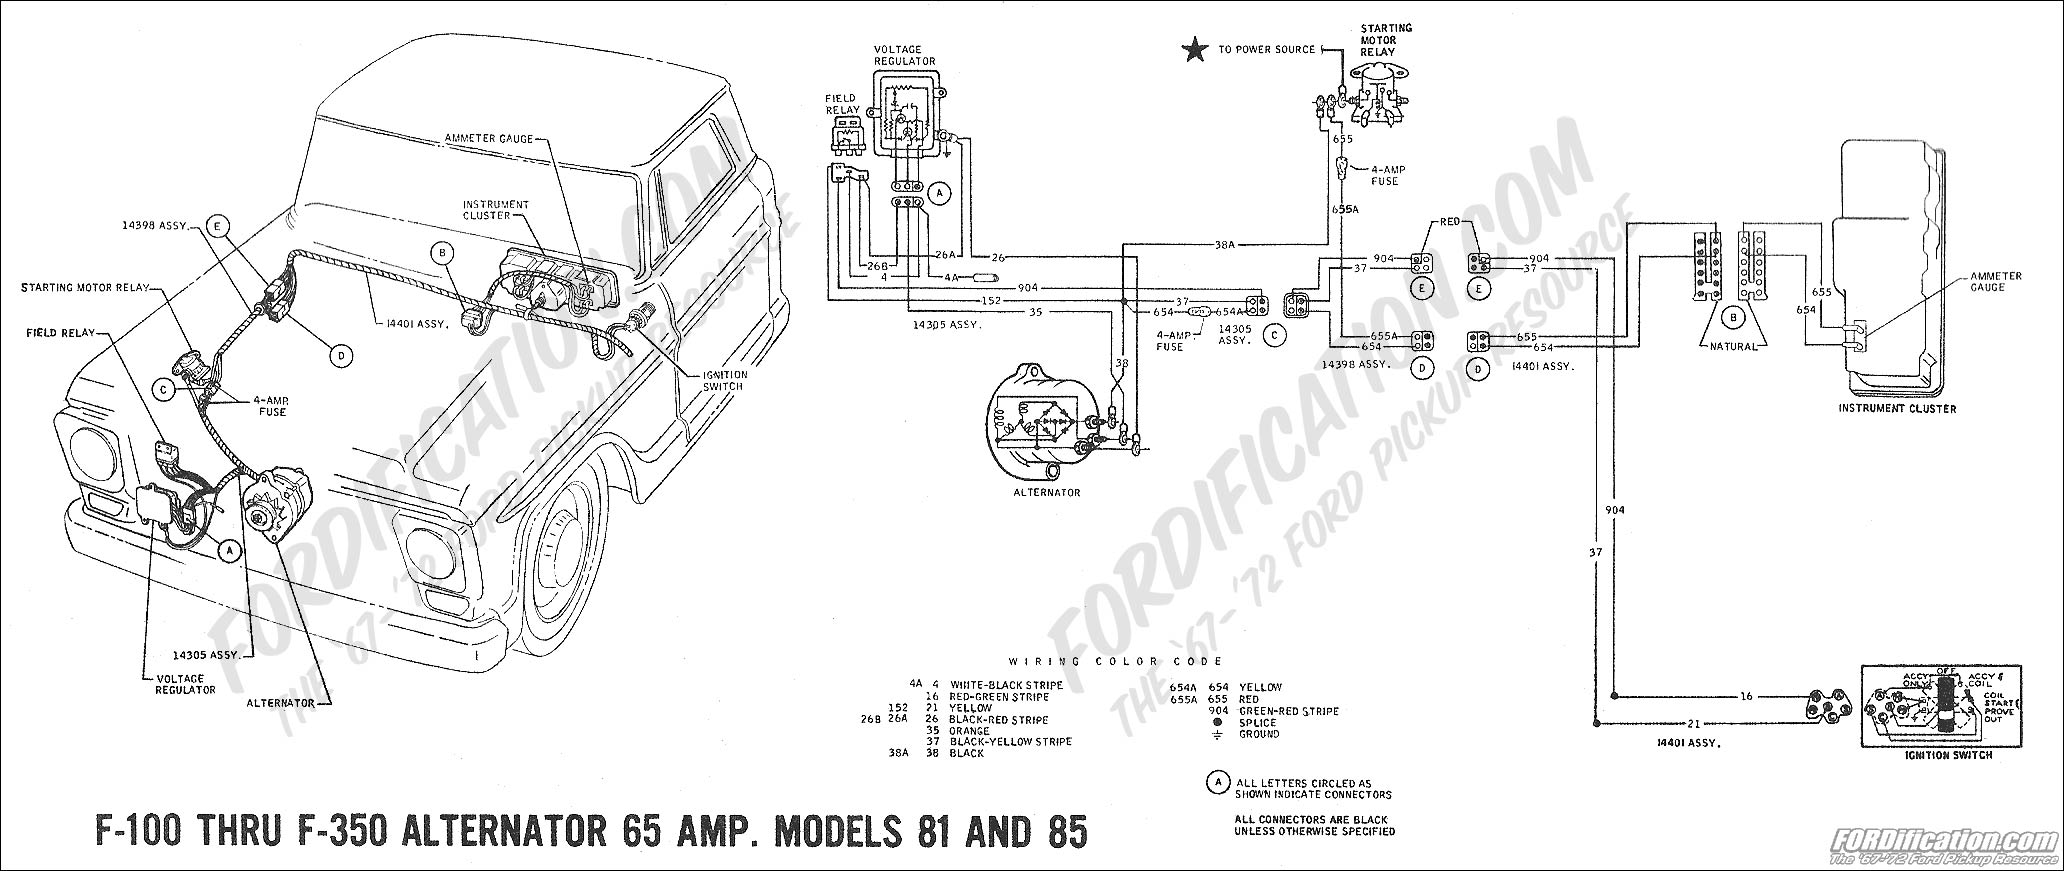 350 Alternator Wiring Diagram List Of Schematic Circuit 94 Chevy Photos For Ford Truck Technical Drawings And Schematics Section H Rh Fordification Com Gm